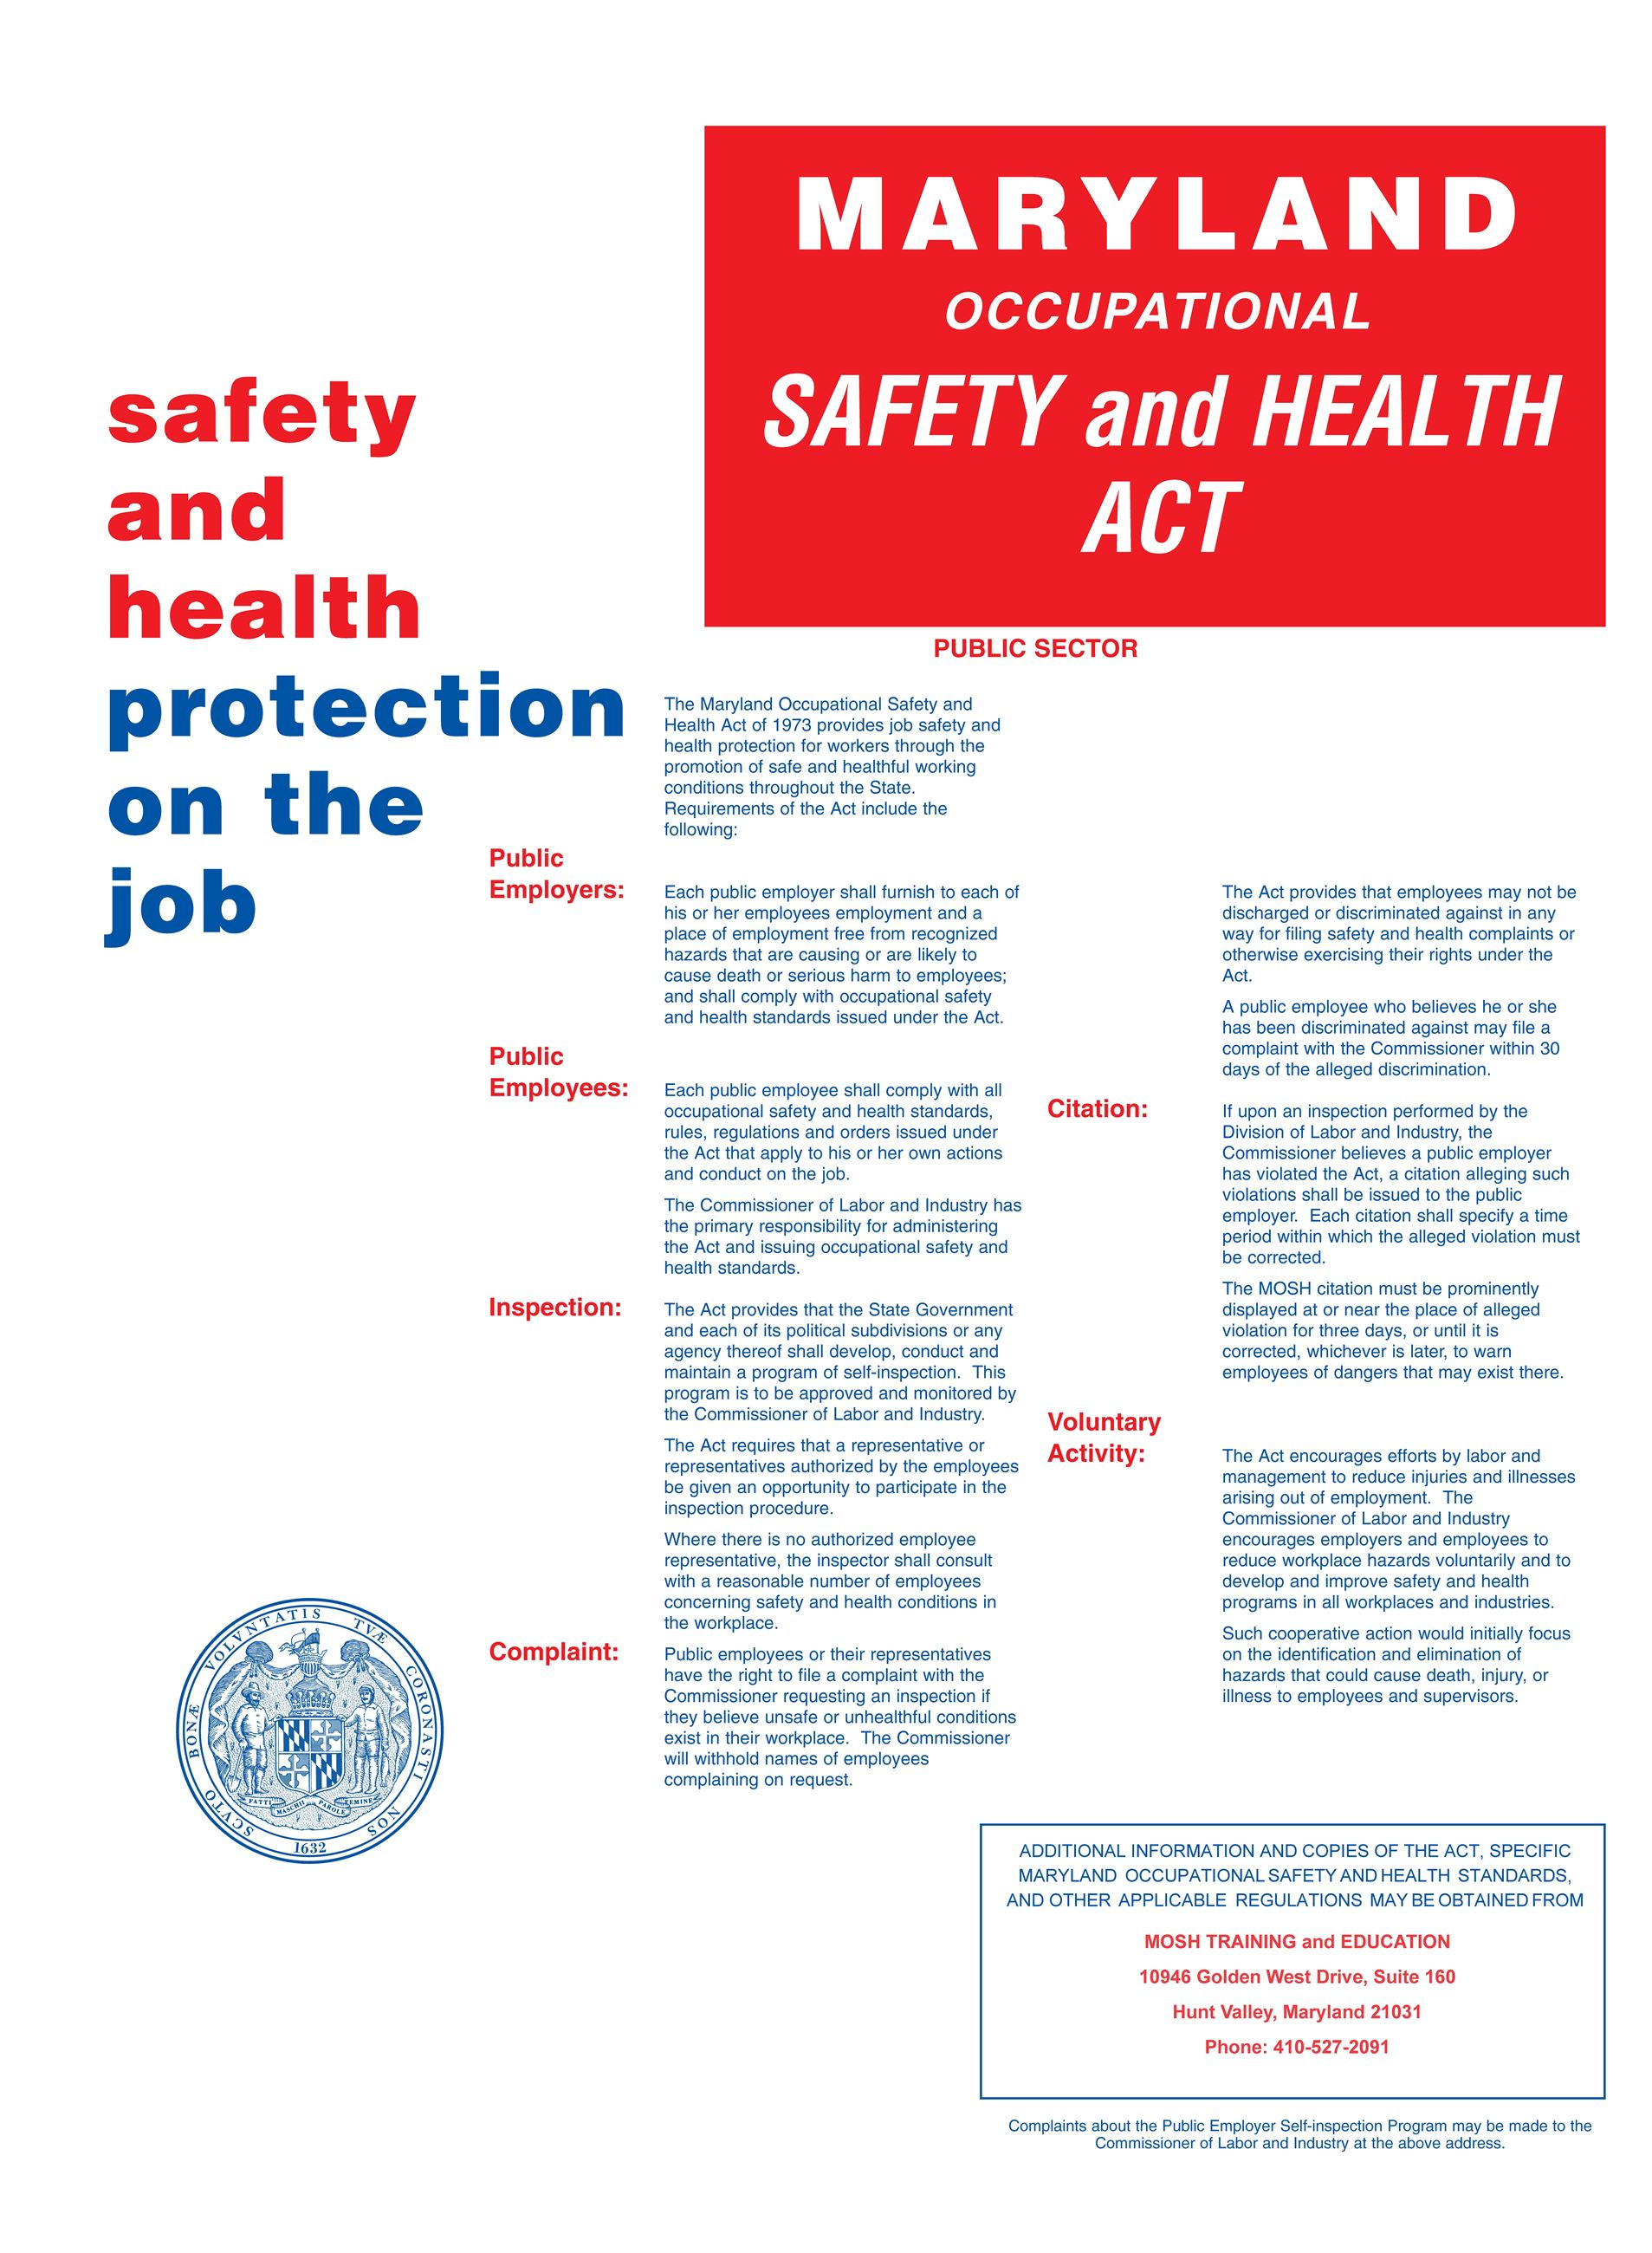 Maryland Occupational Safety and Health Act